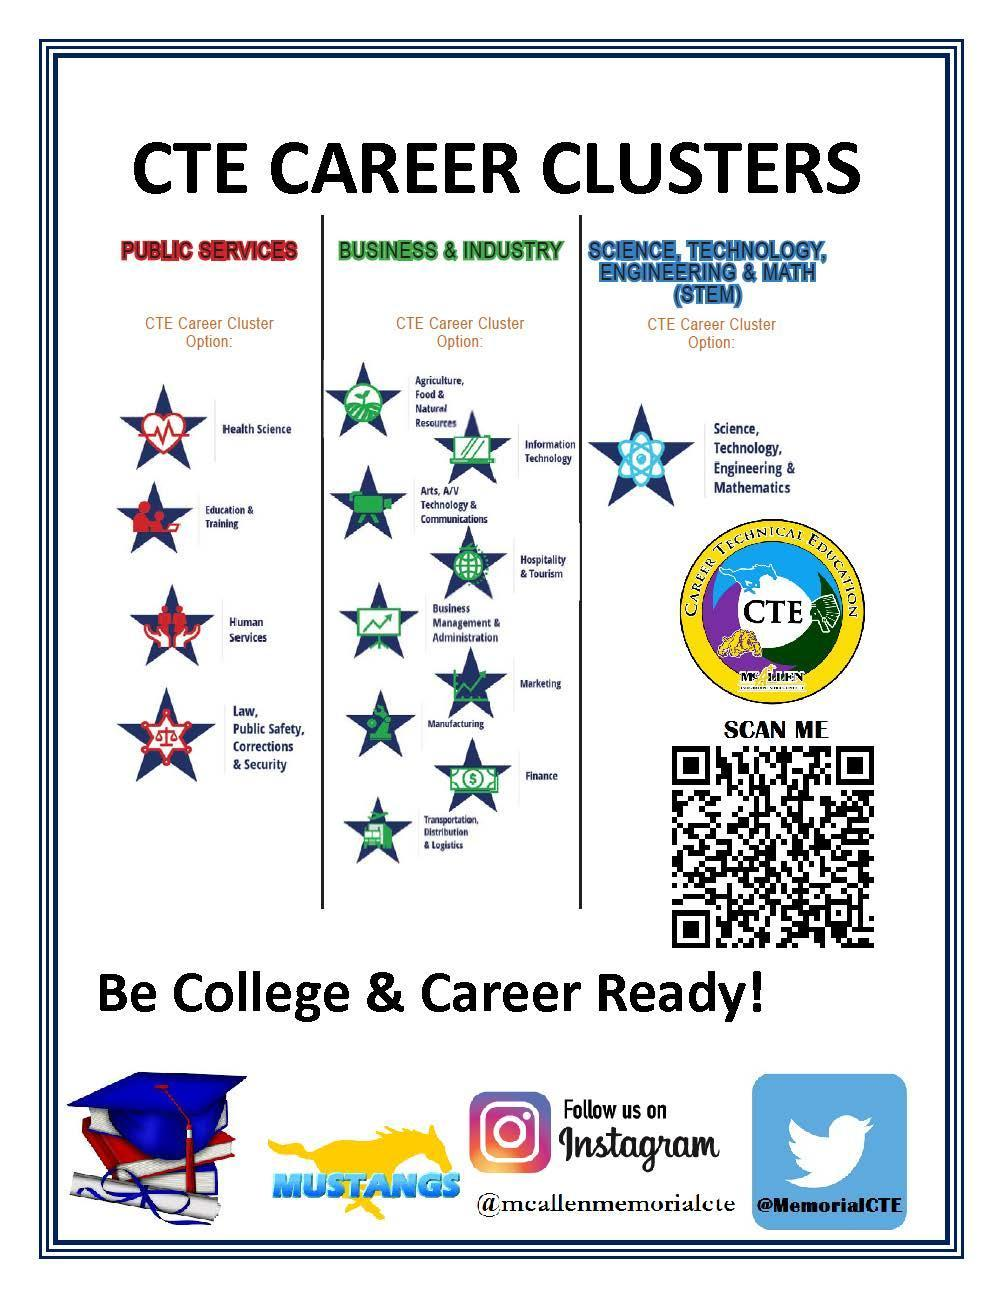 CTE Career Clusters: Public Services, Business & Industry, STEM